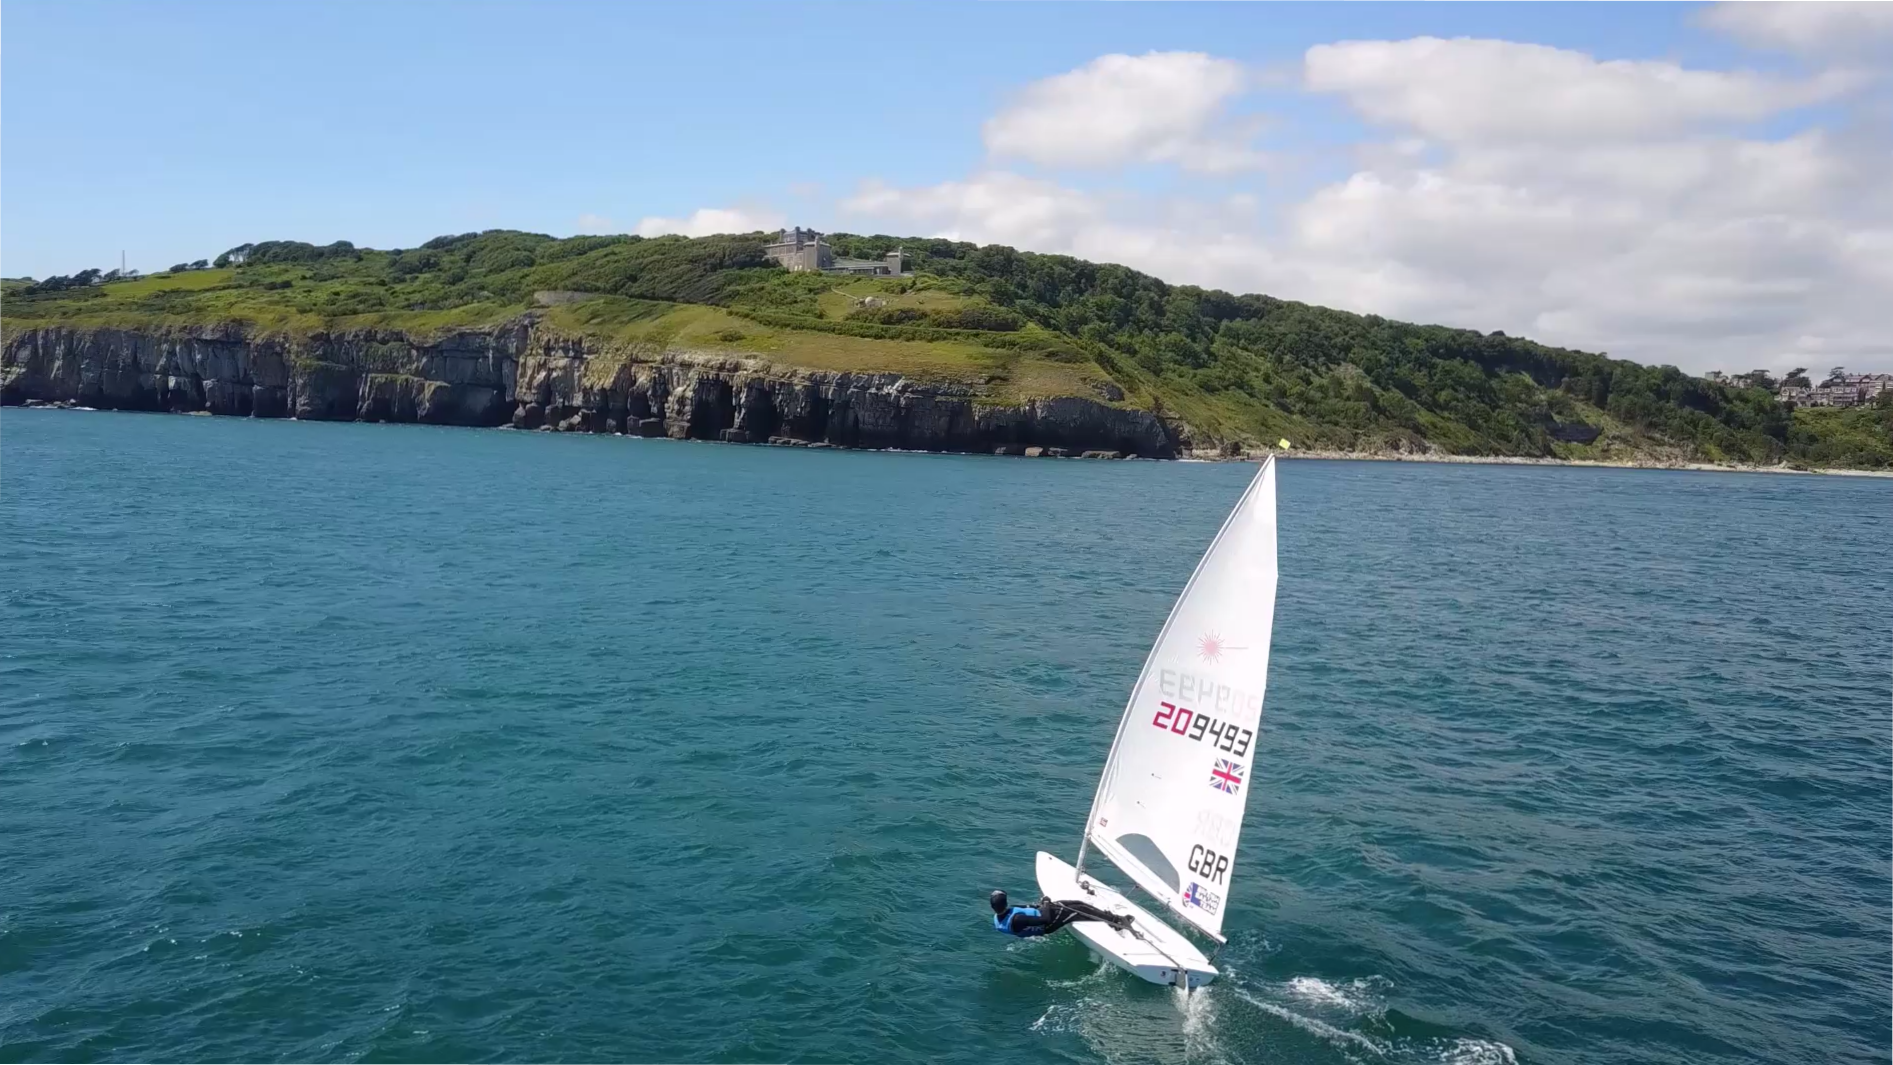 Training off Durlston Head back. After spending the last few weeks of September back home in Swanage training, I headed off to Split, in Croatia for the Men's Senior Worlds.